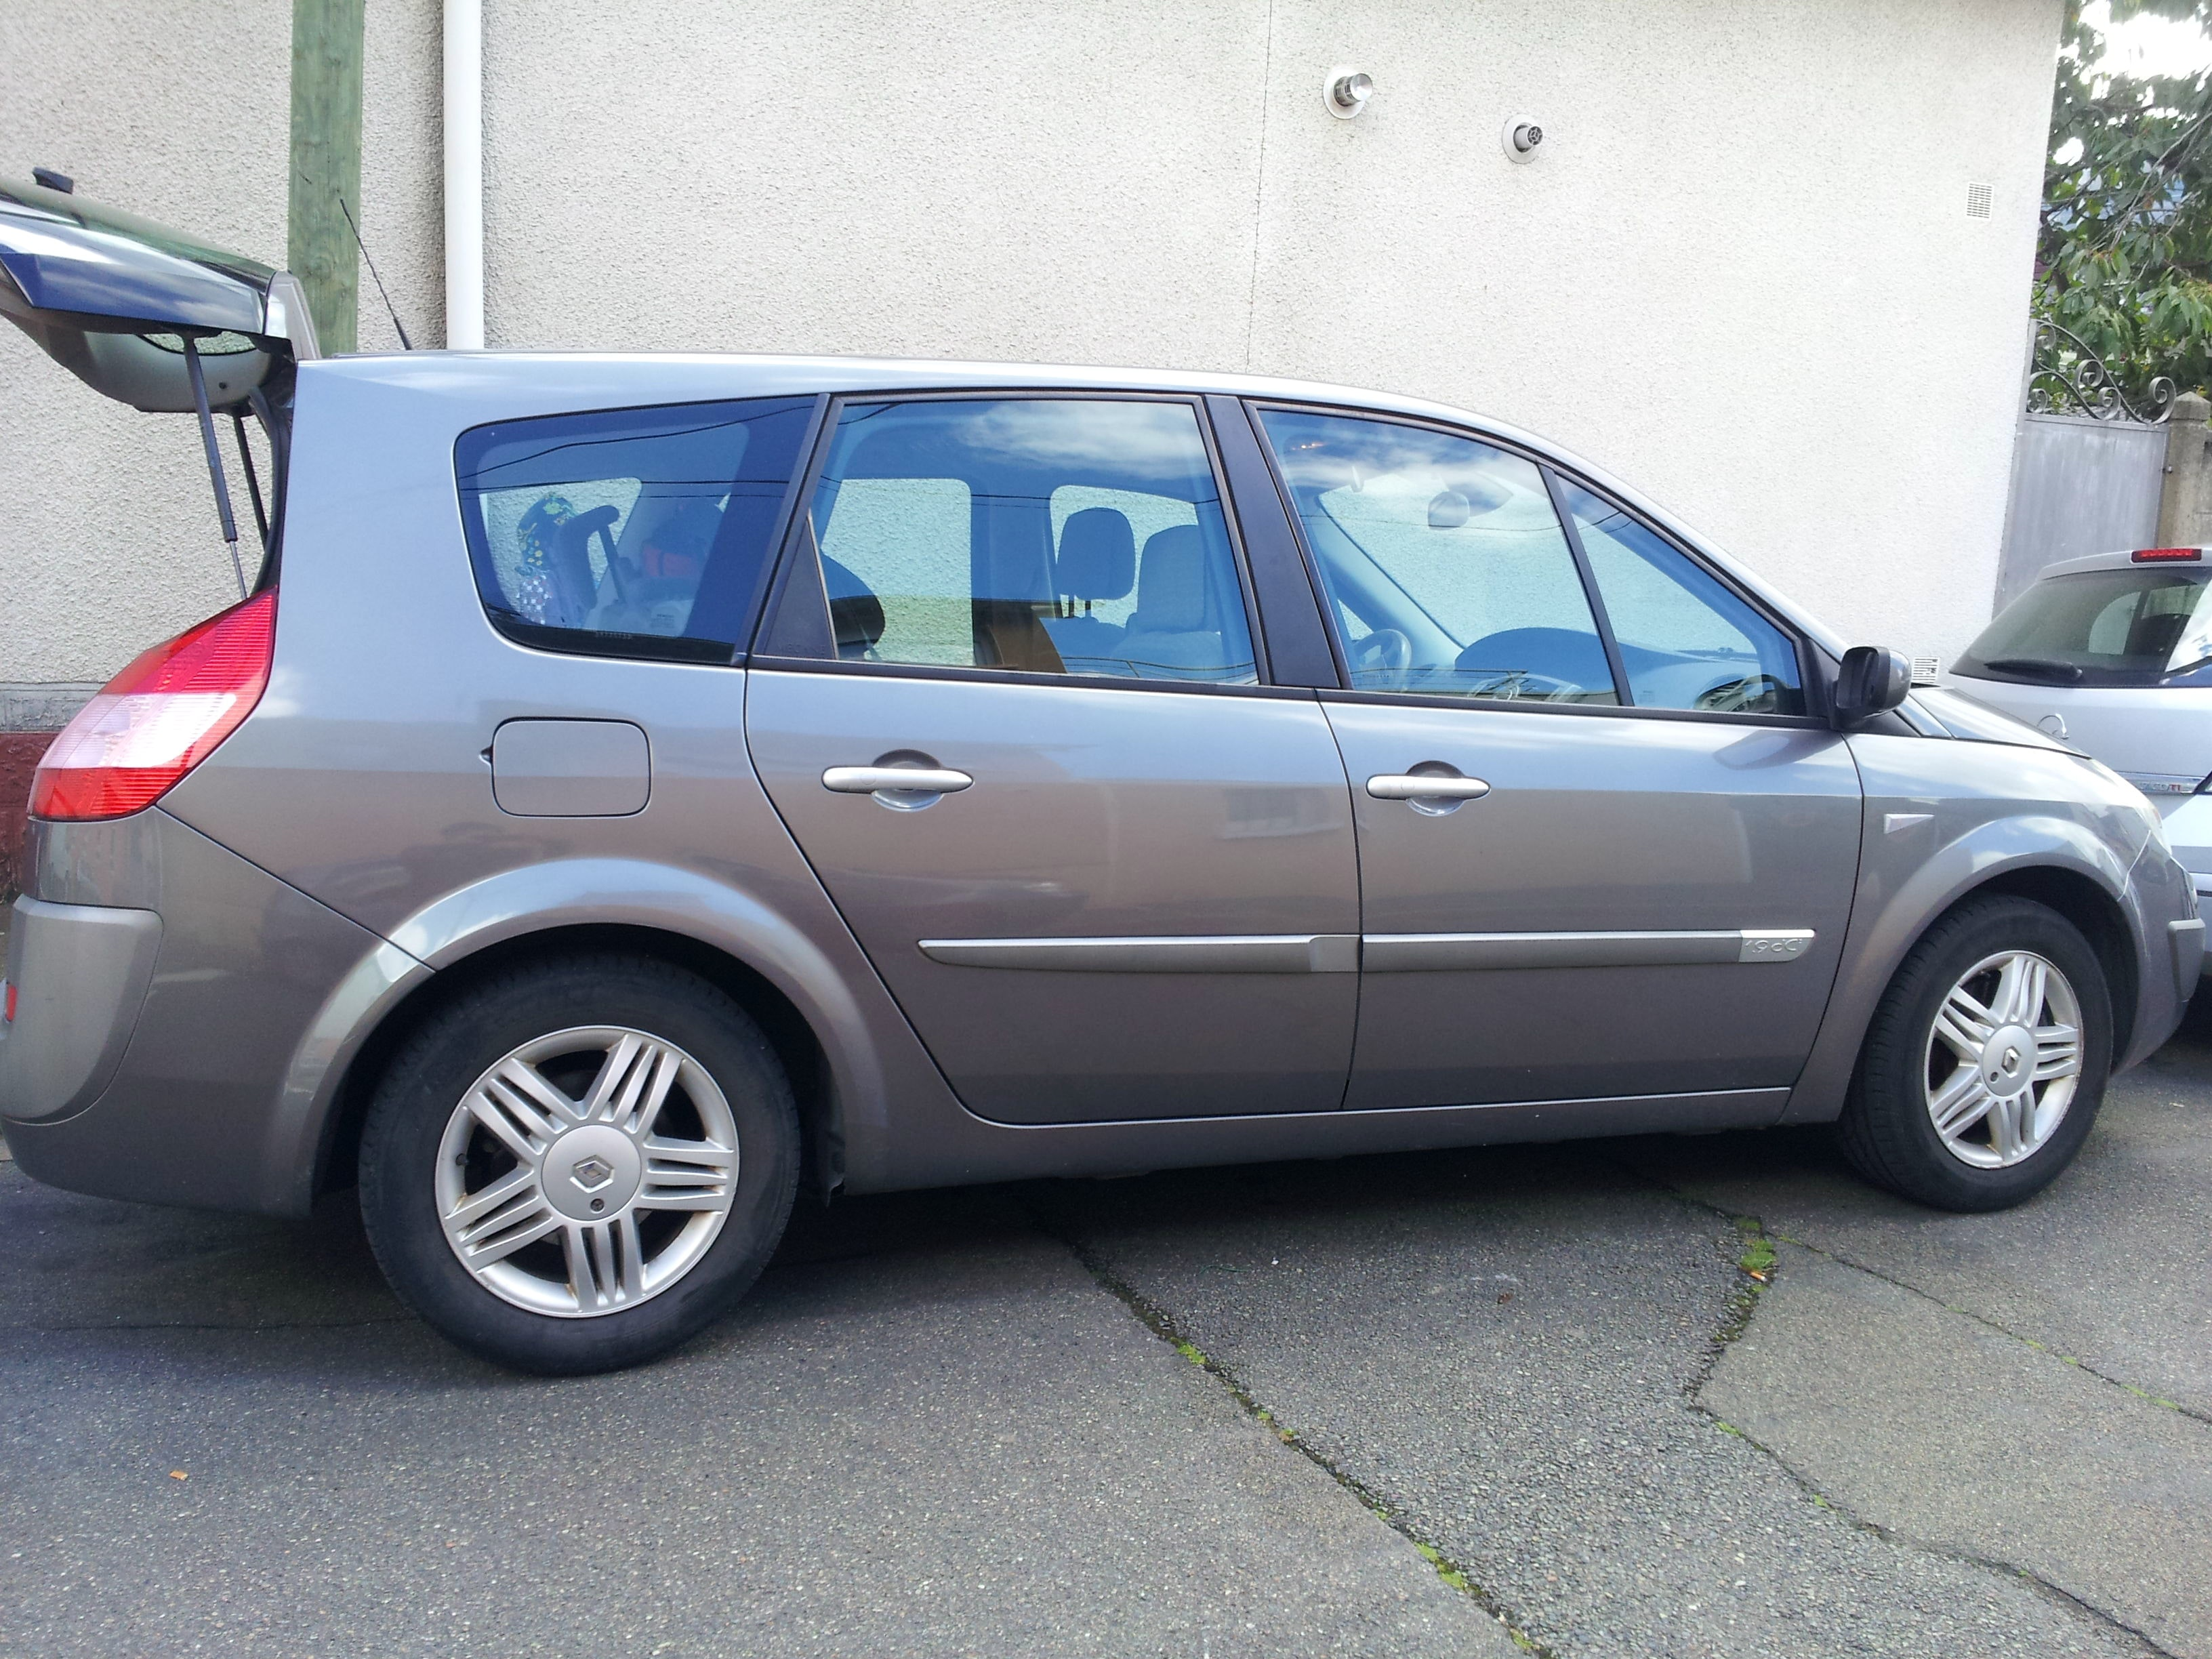 Renault Megane Scenic 2 Luxe , 2004, Diesel, 7 places